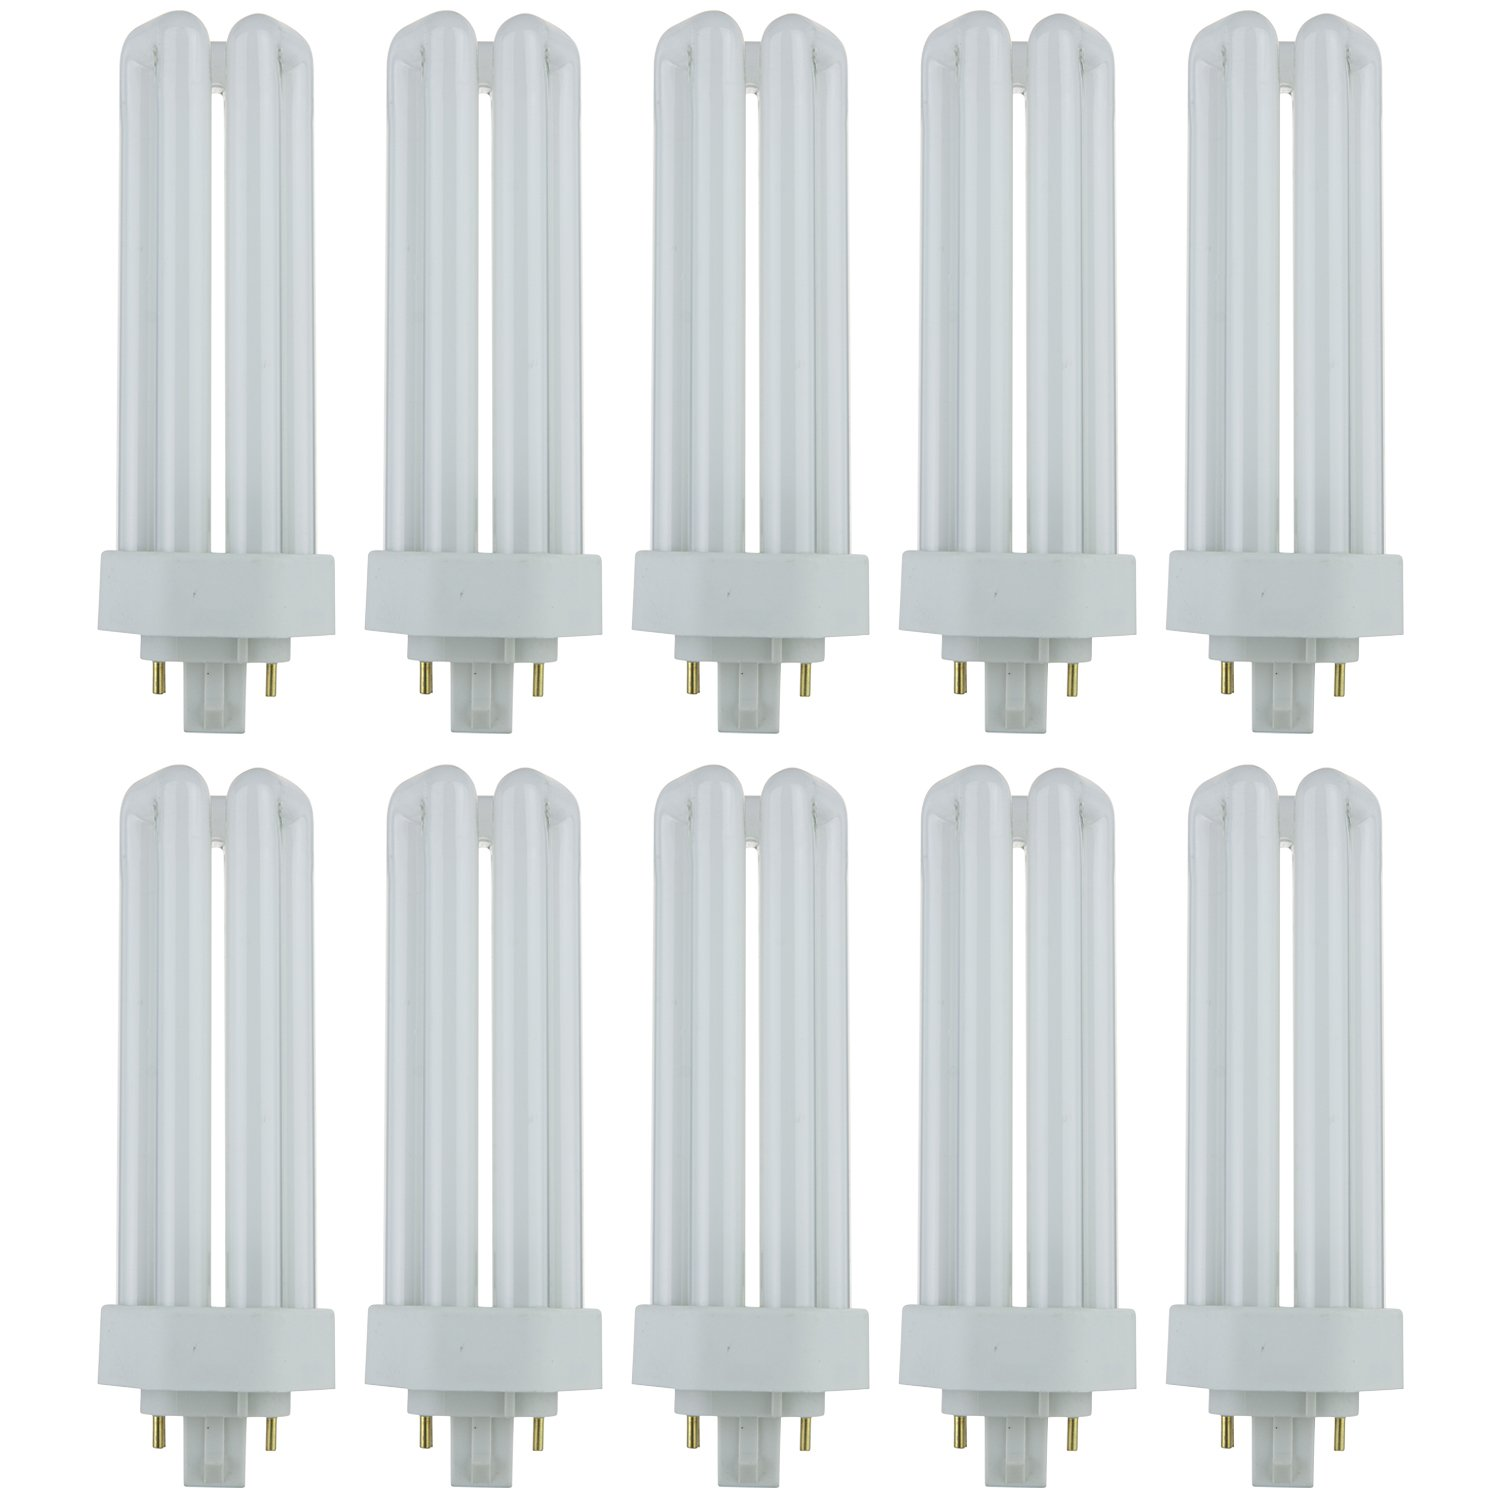 Sunlite PLT32/E/SP50K/10PK Fluorescent 32W PLD Triple U-Shaped Twin Tube CFL Bulbs, 4-Pin GX24Q-3 Base, 5000K Super White, 10 Pack, 5000K-Super by Sunlite (Image #1)